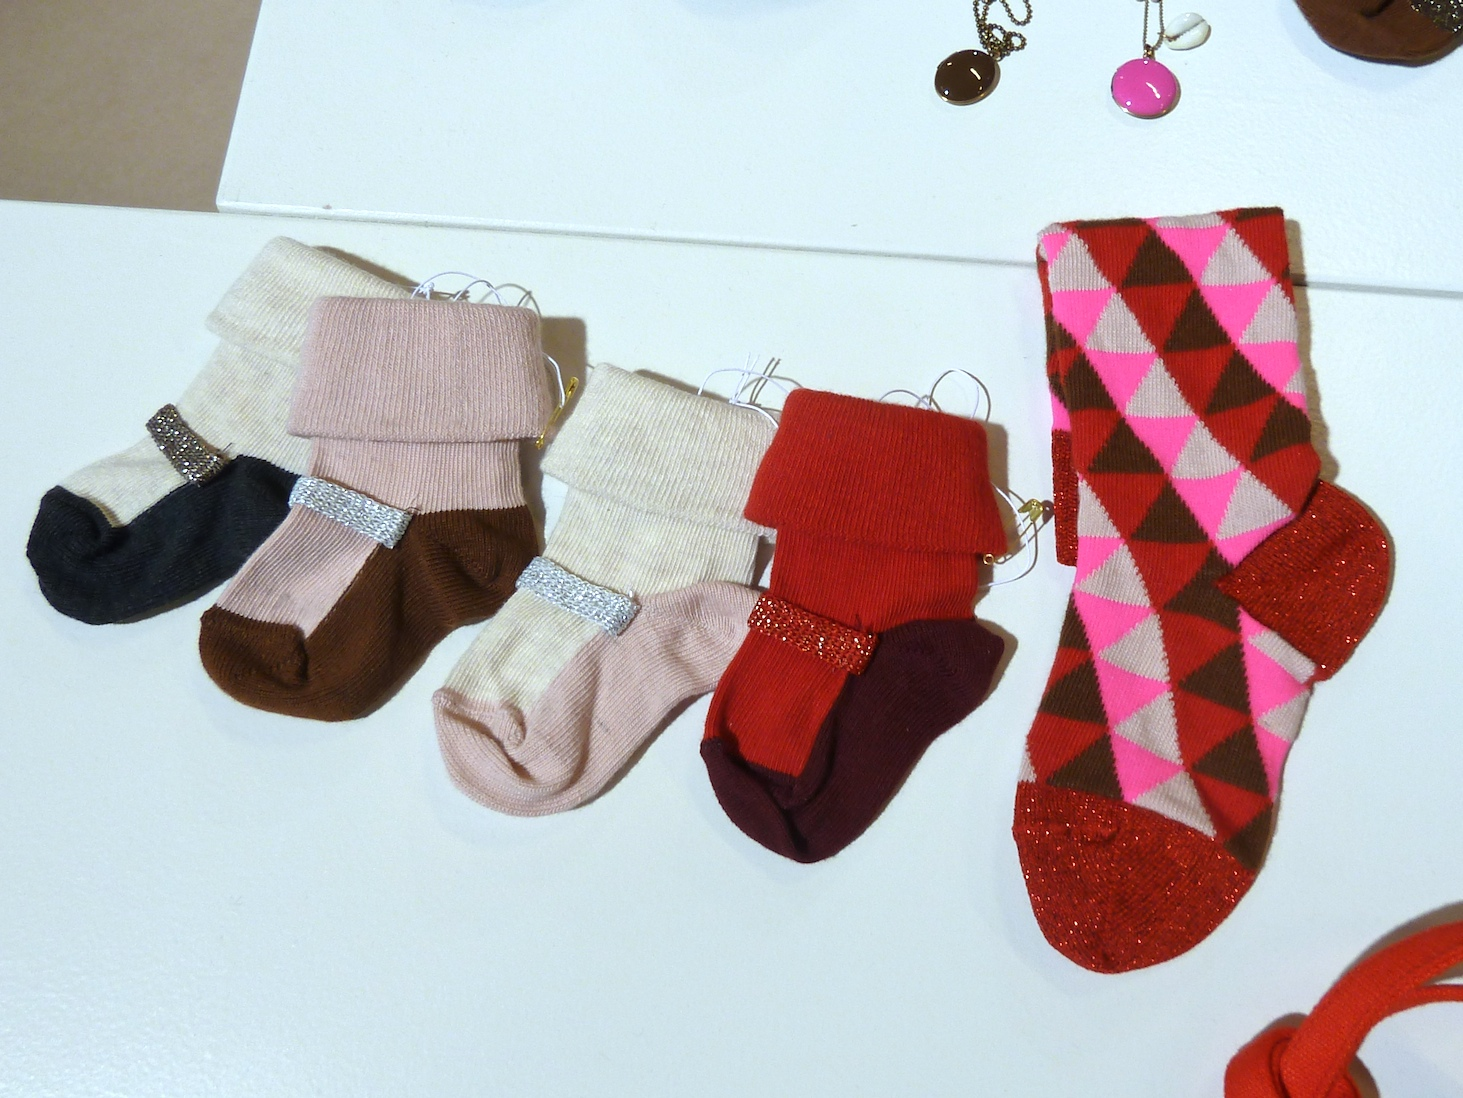 Just the cutest baby socks from April Showers by Polder for winter 2011